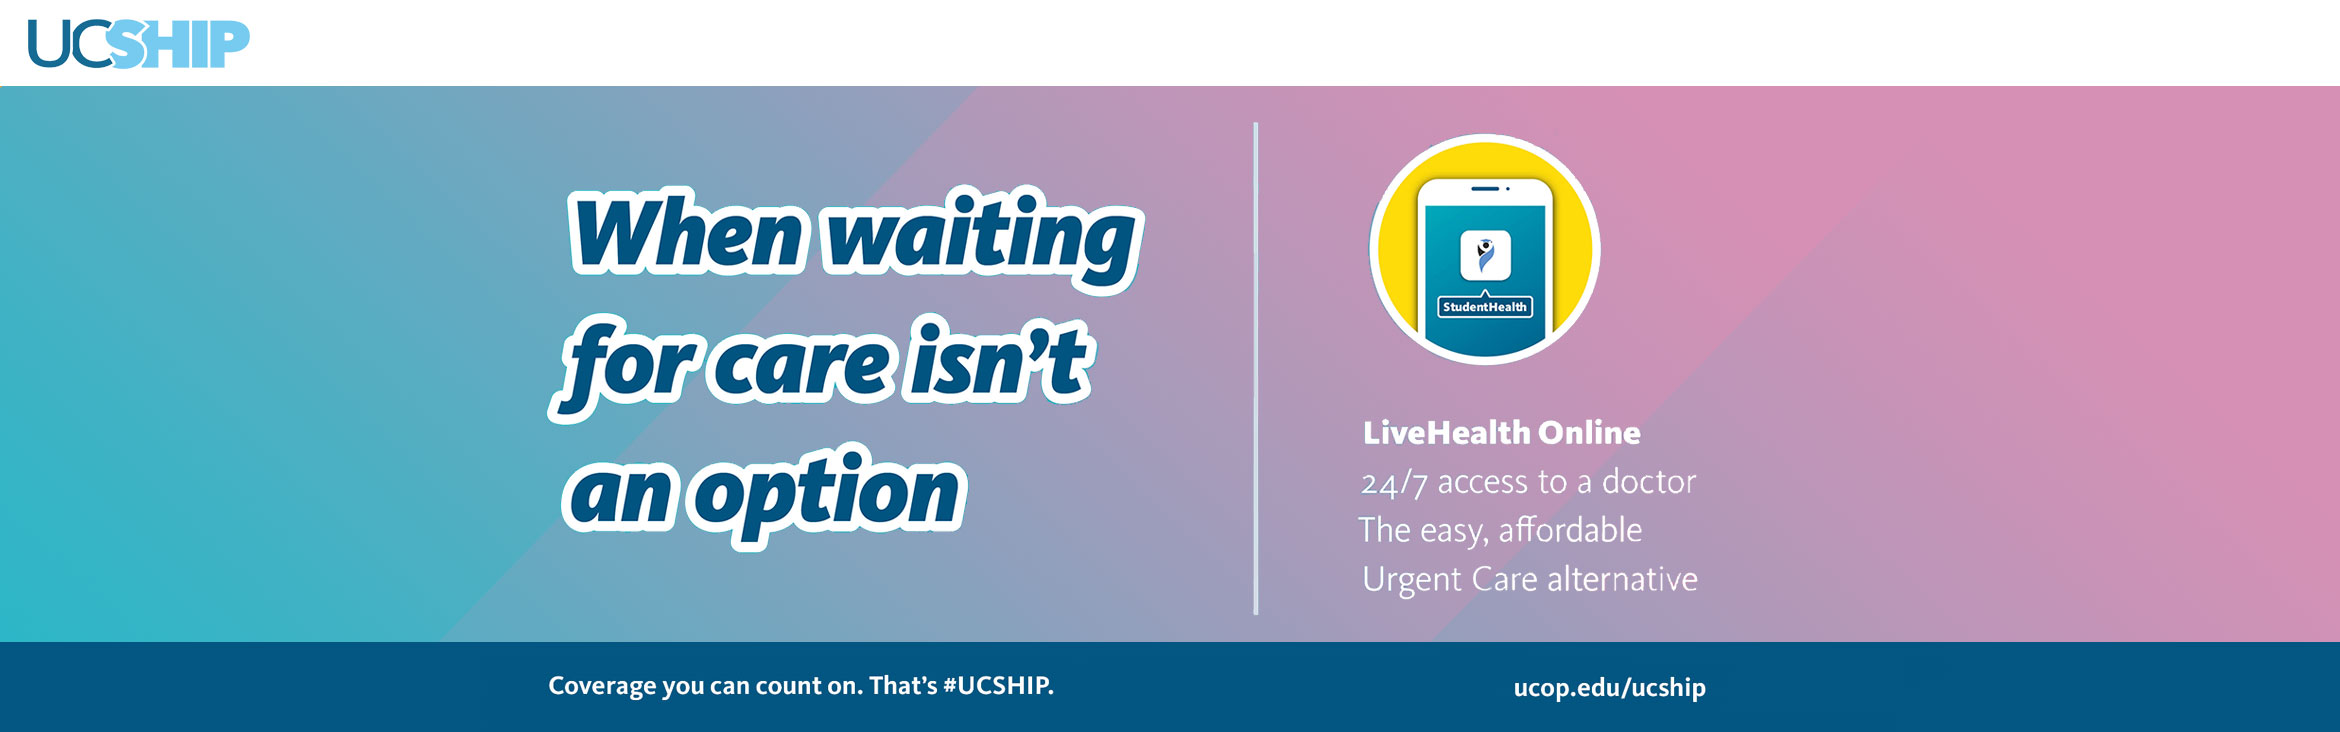 When waiting for care isn't an option LiveHealth Online 24/7 access to a doctor The easy affordable Urgent Care alternative